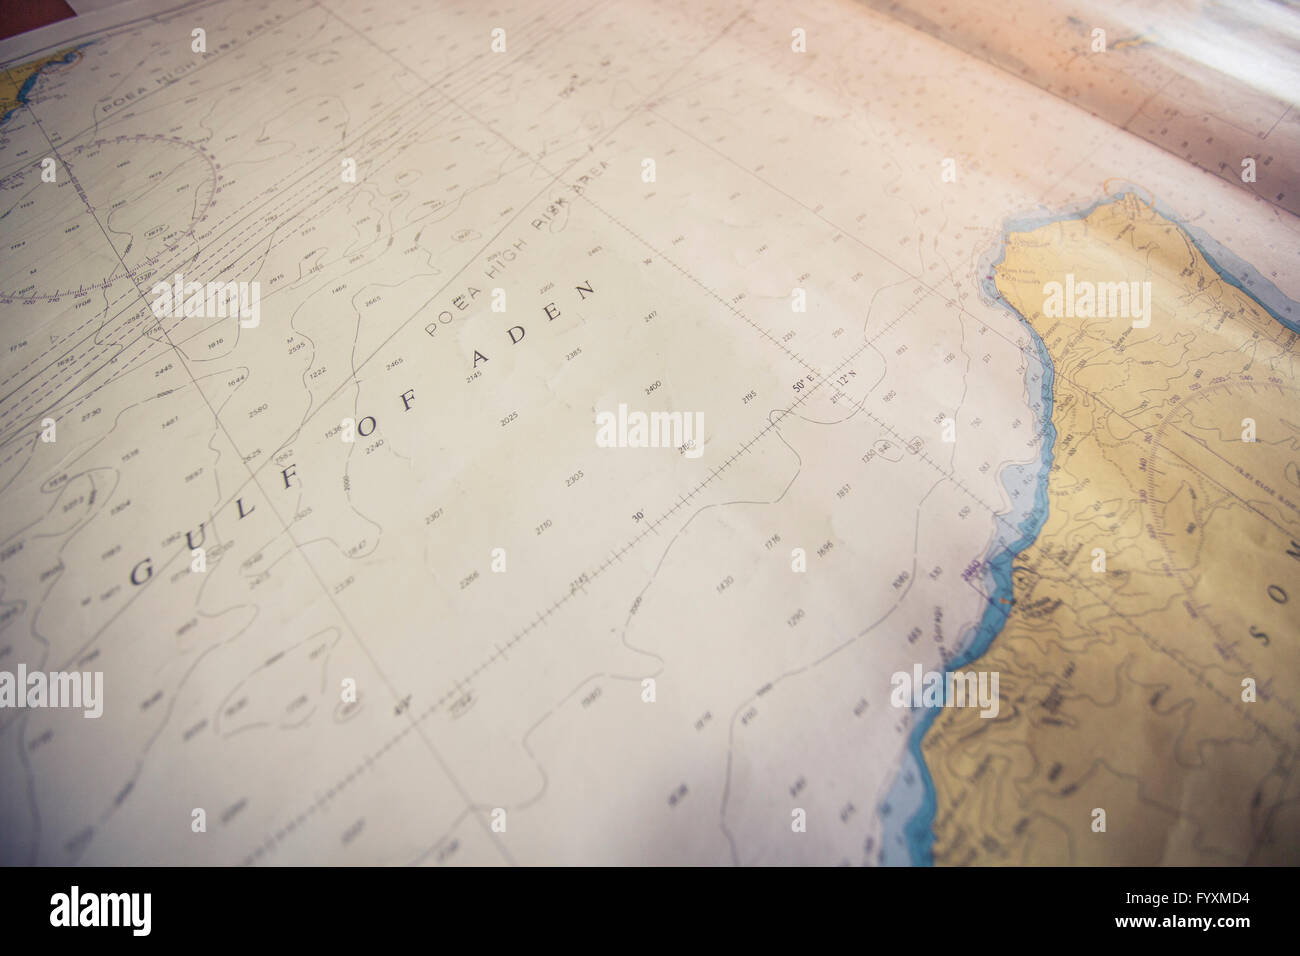 Gulf Of Aden Stock Photos Gulf Of Aden Stock Images Alamy